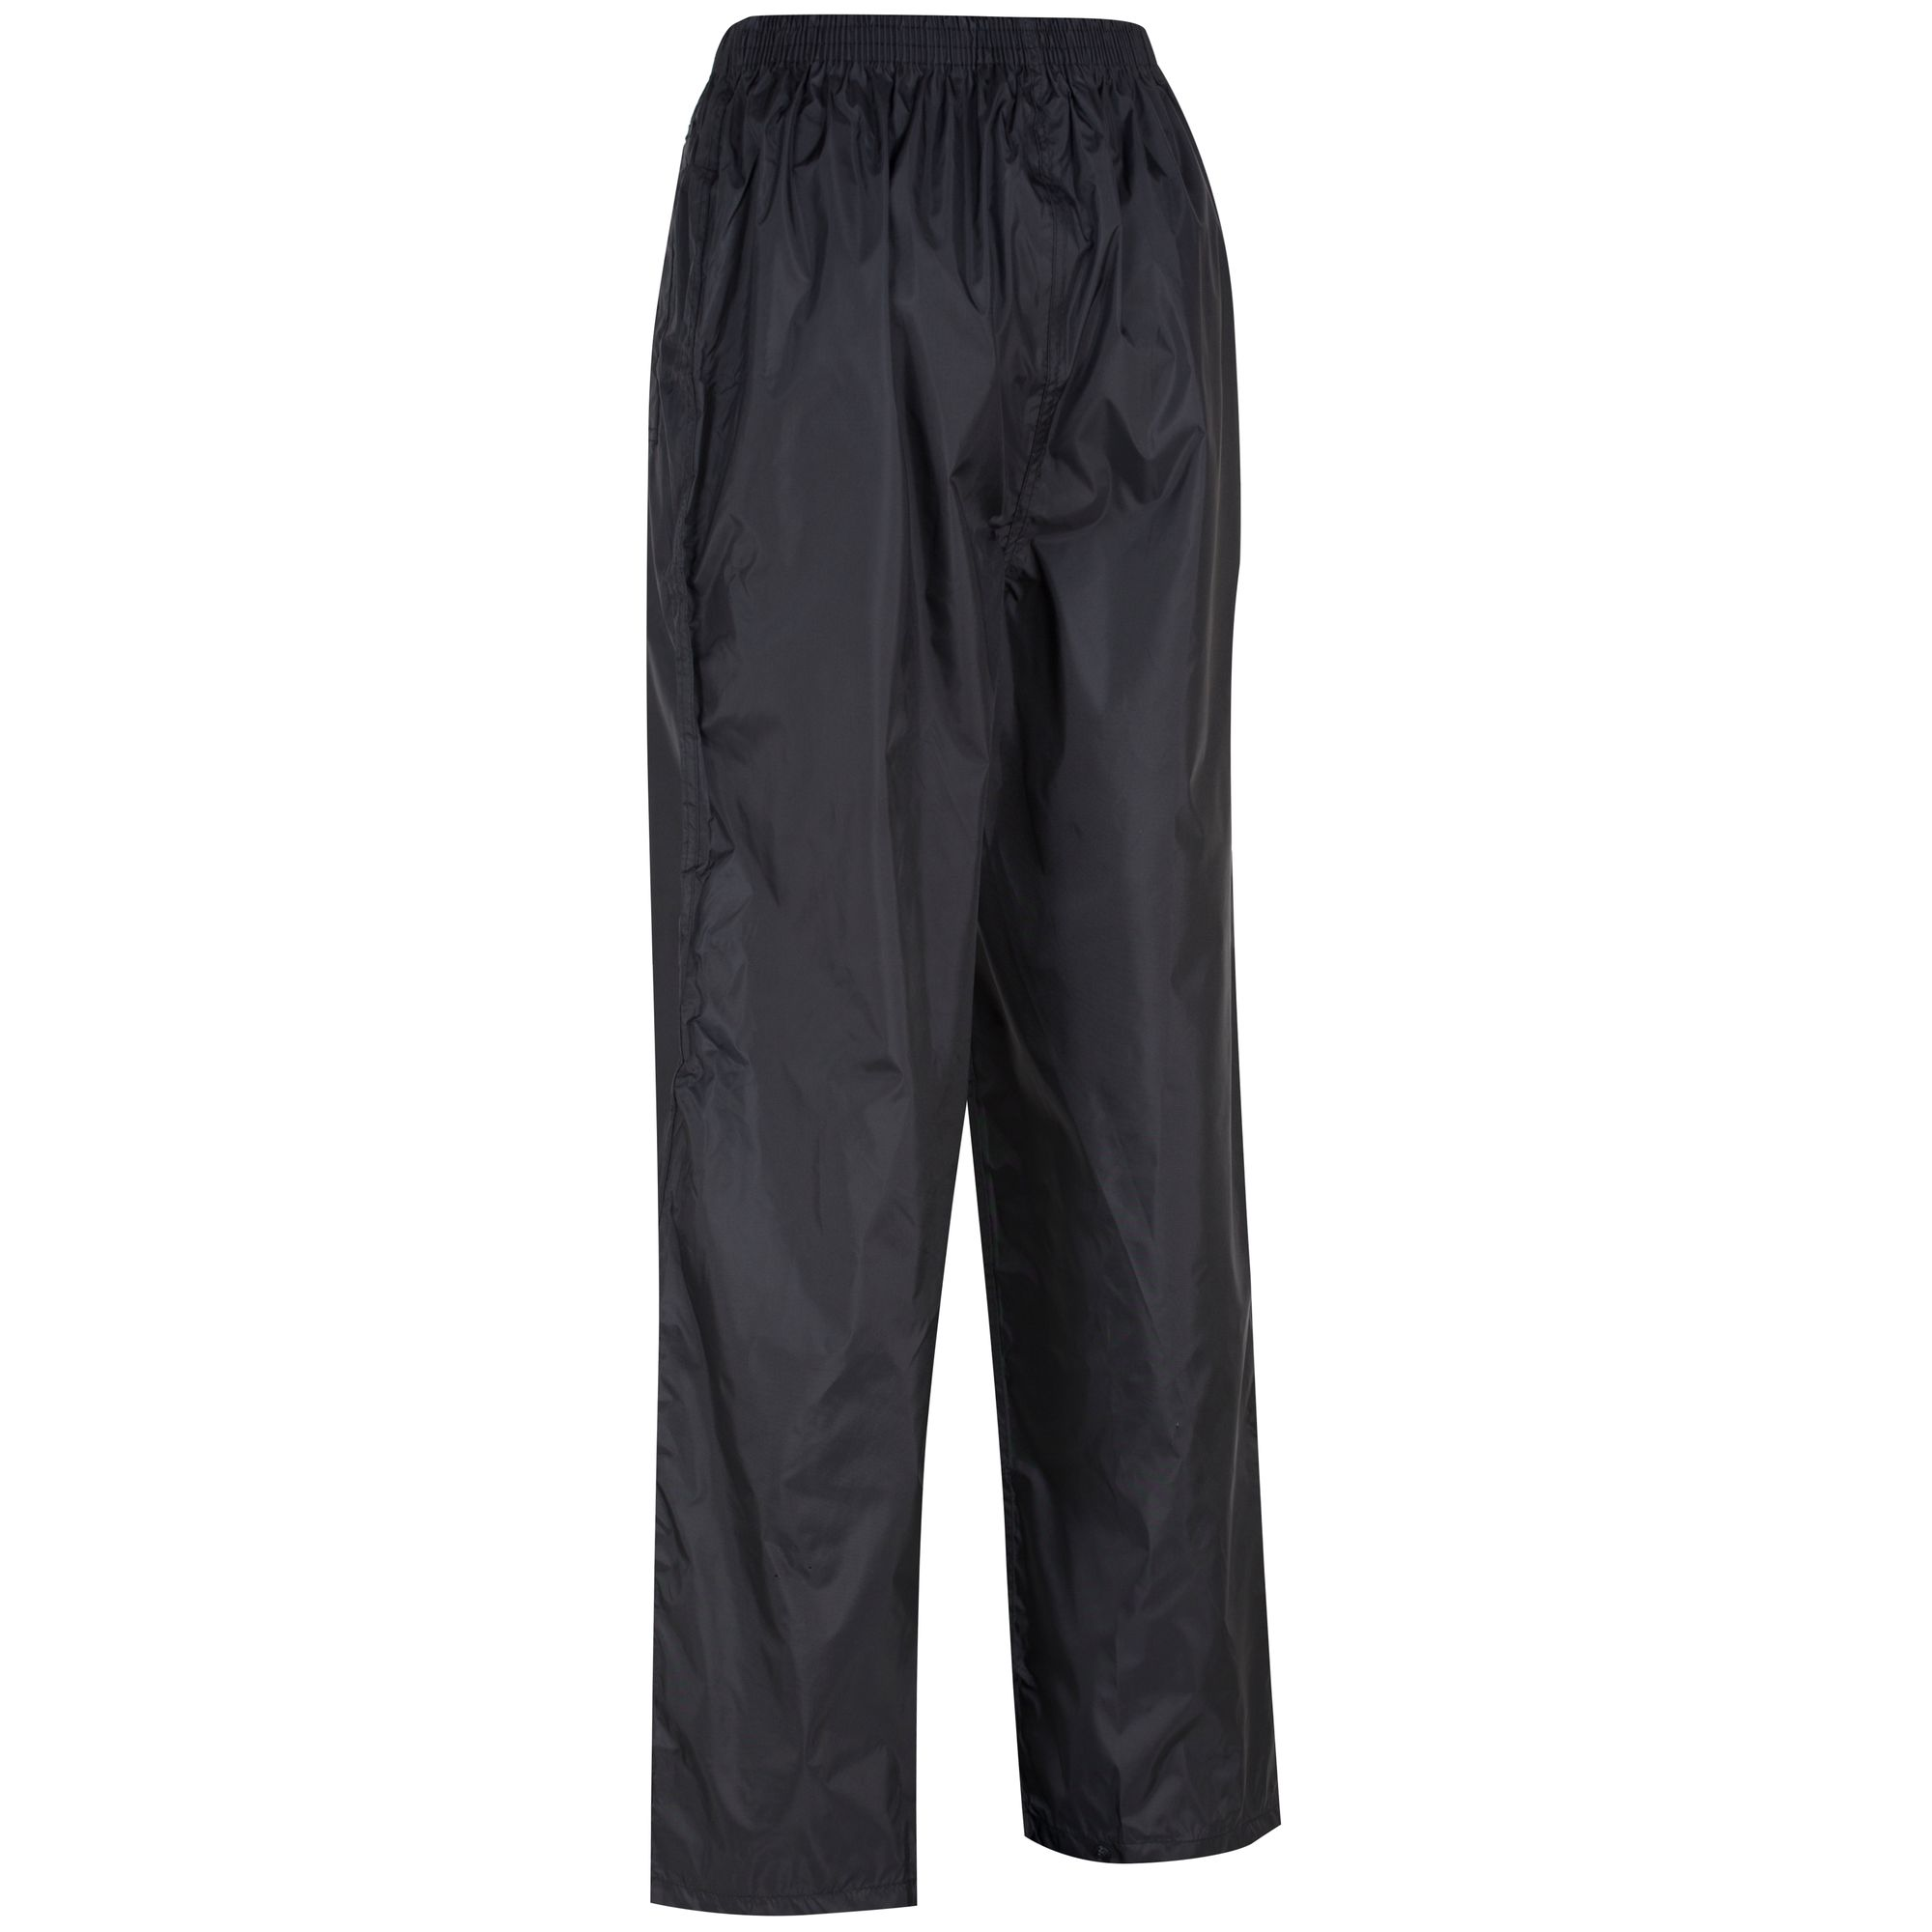 Regatta-Great-Outdoors-Womens-Adventure-Tech-Waterproof-Overtrousers-RG1170 thumbnail 5